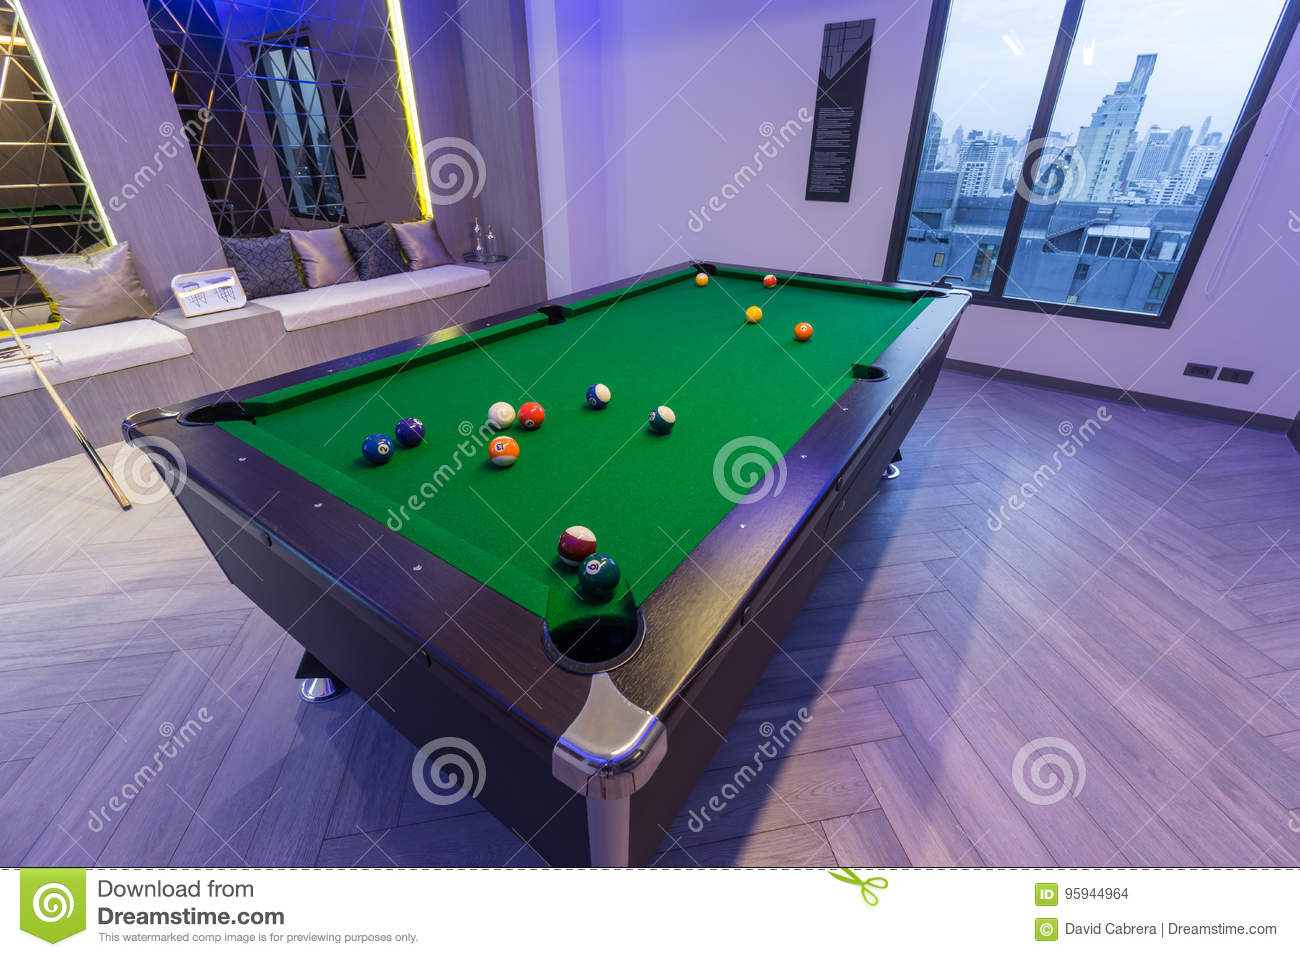 Snooker Pool Billiards green table with complete set of balls and two poo cues in a modern games room